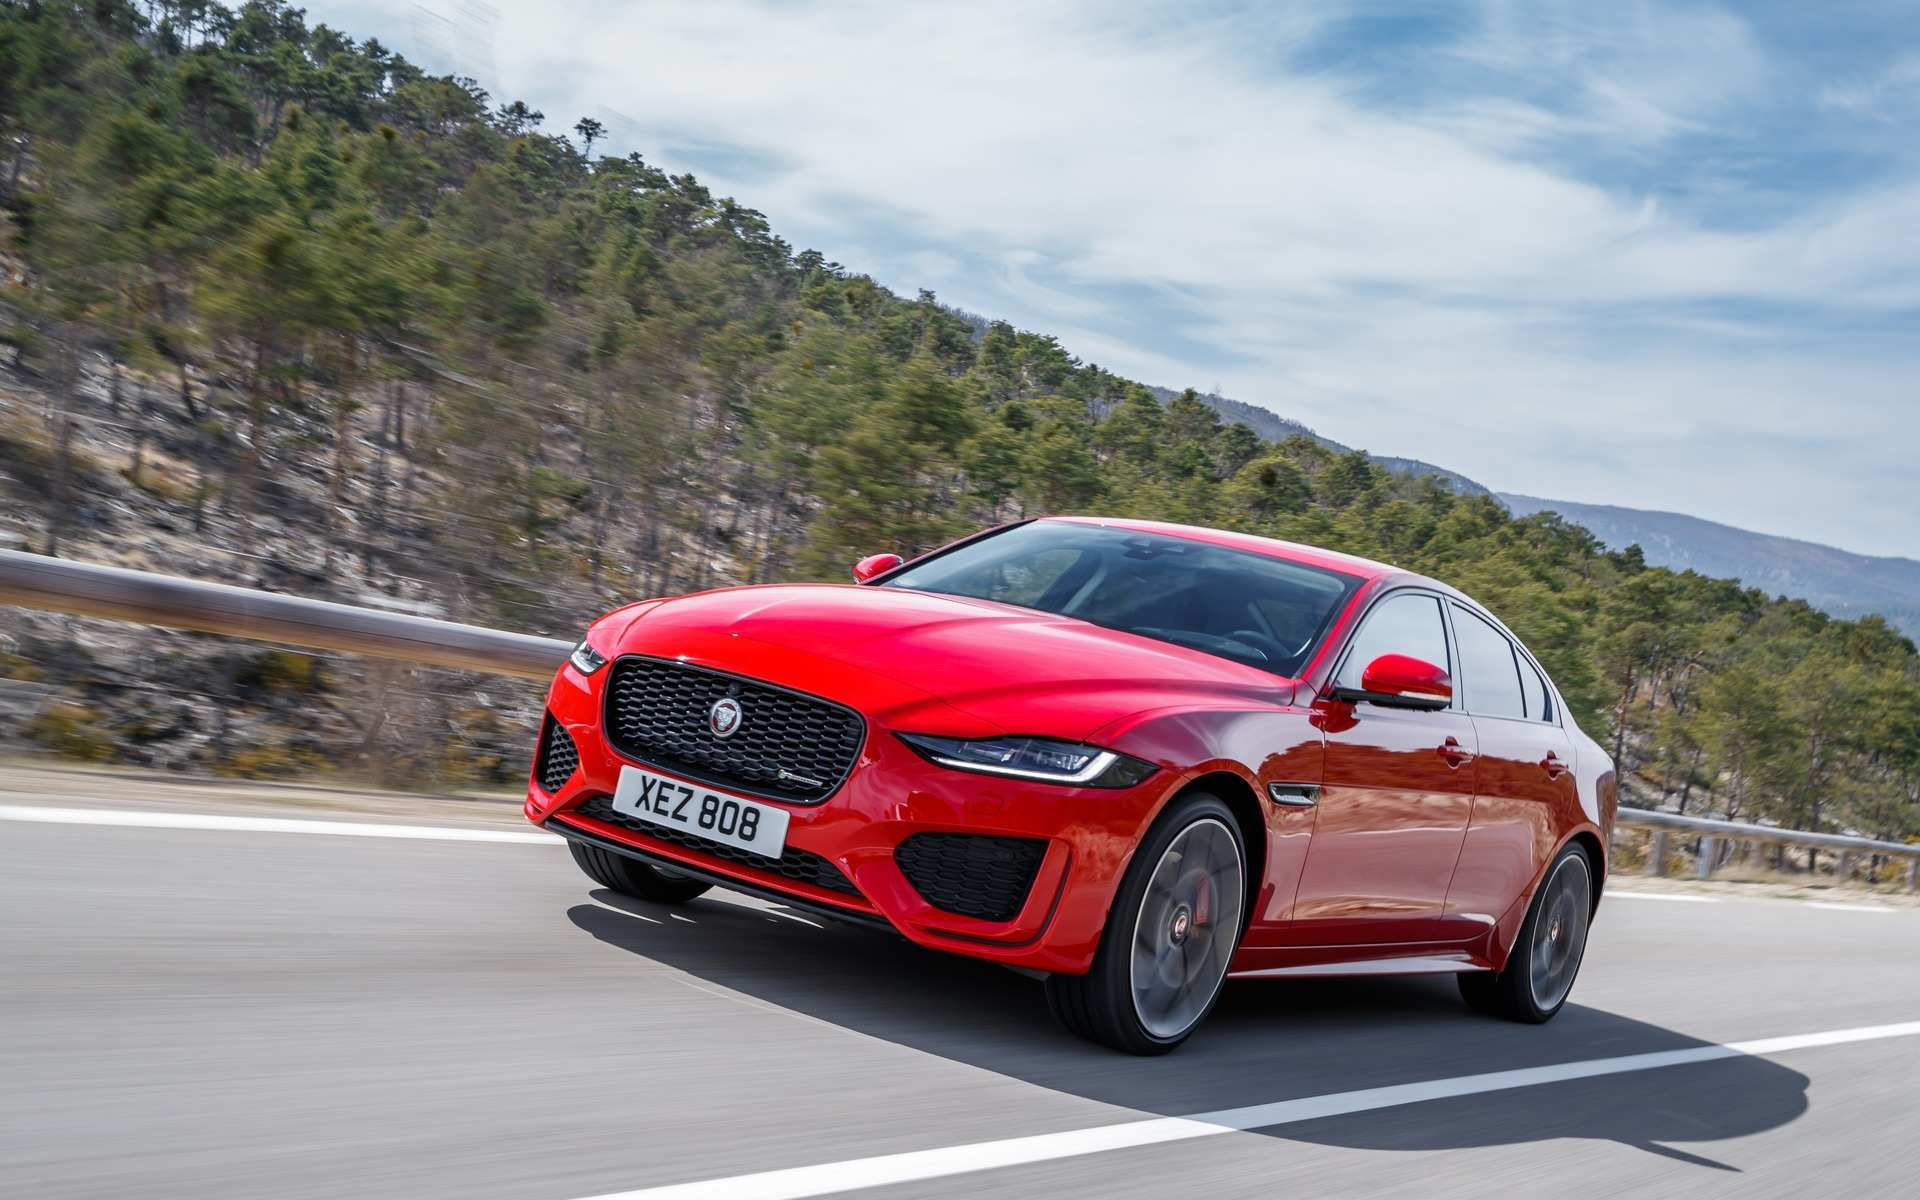 46 All New Jaguar Xe 2020 Launch Research New with Jaguar Xe 2020 Launch